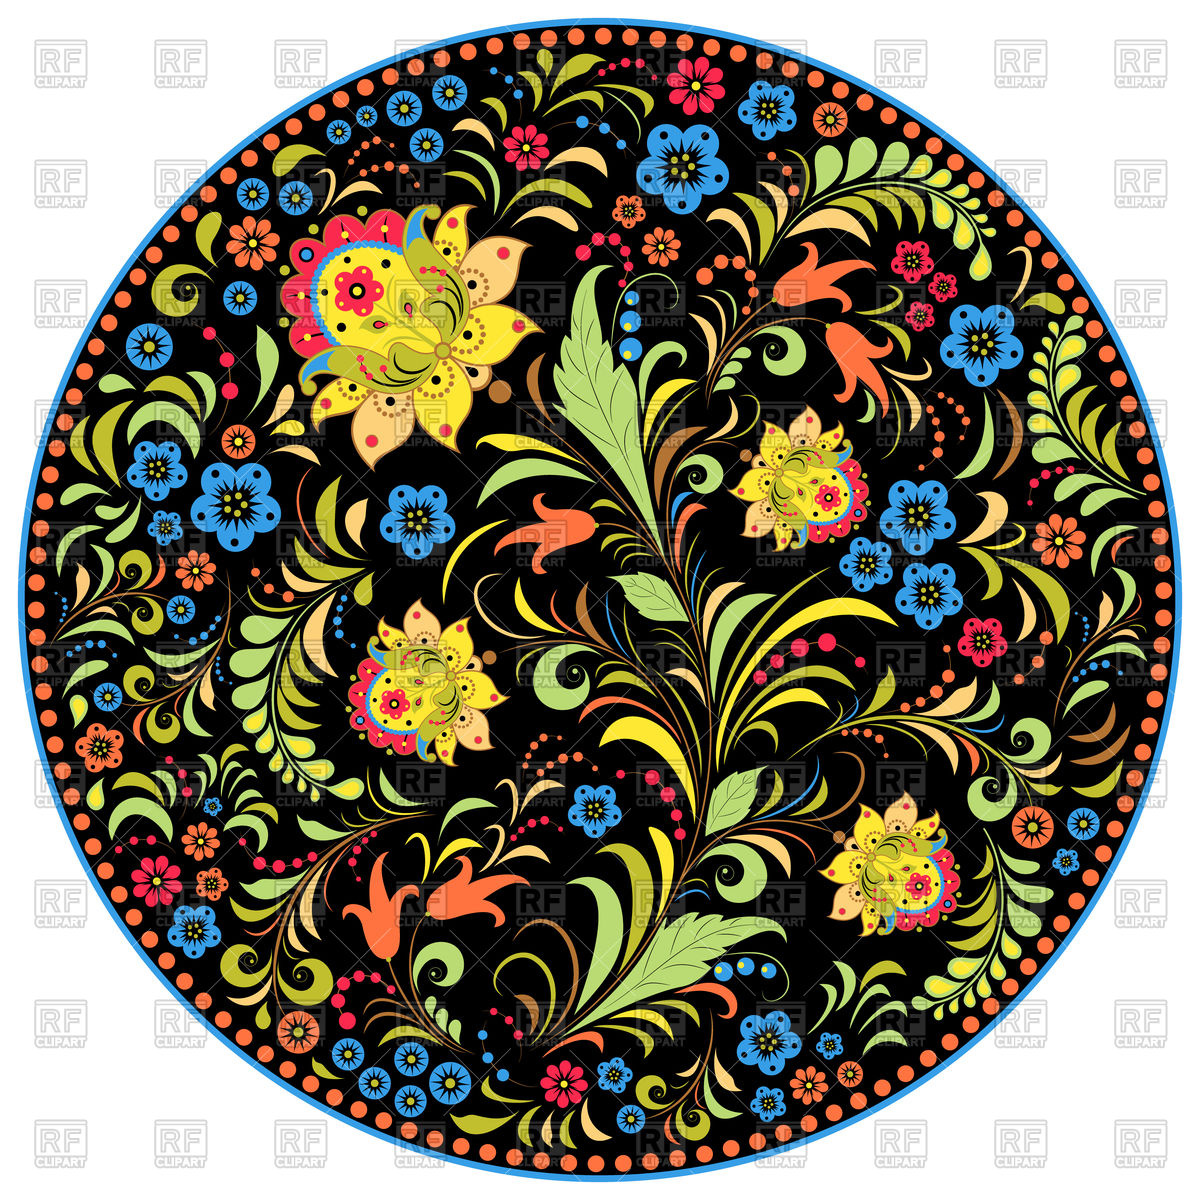 Floral traditional russian pattern Khokhloma Vector Image #110390.